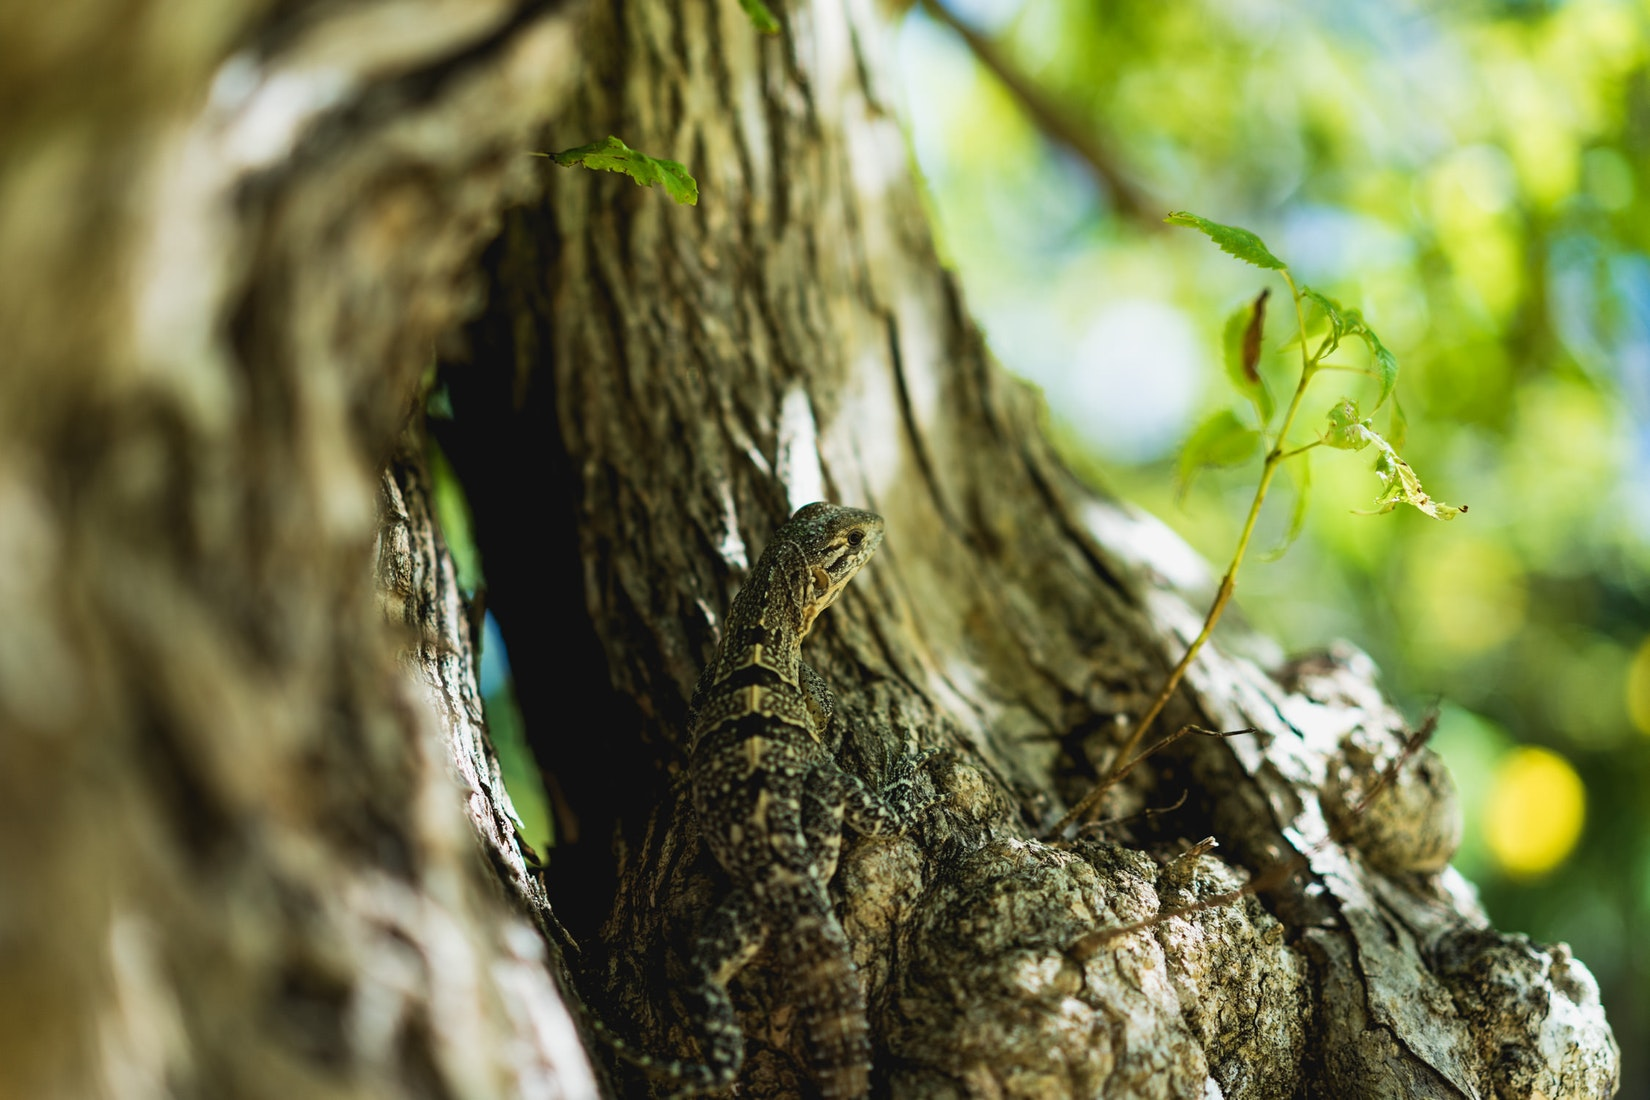 Lizard in a tree at the Chichen Itza national park in Mexico